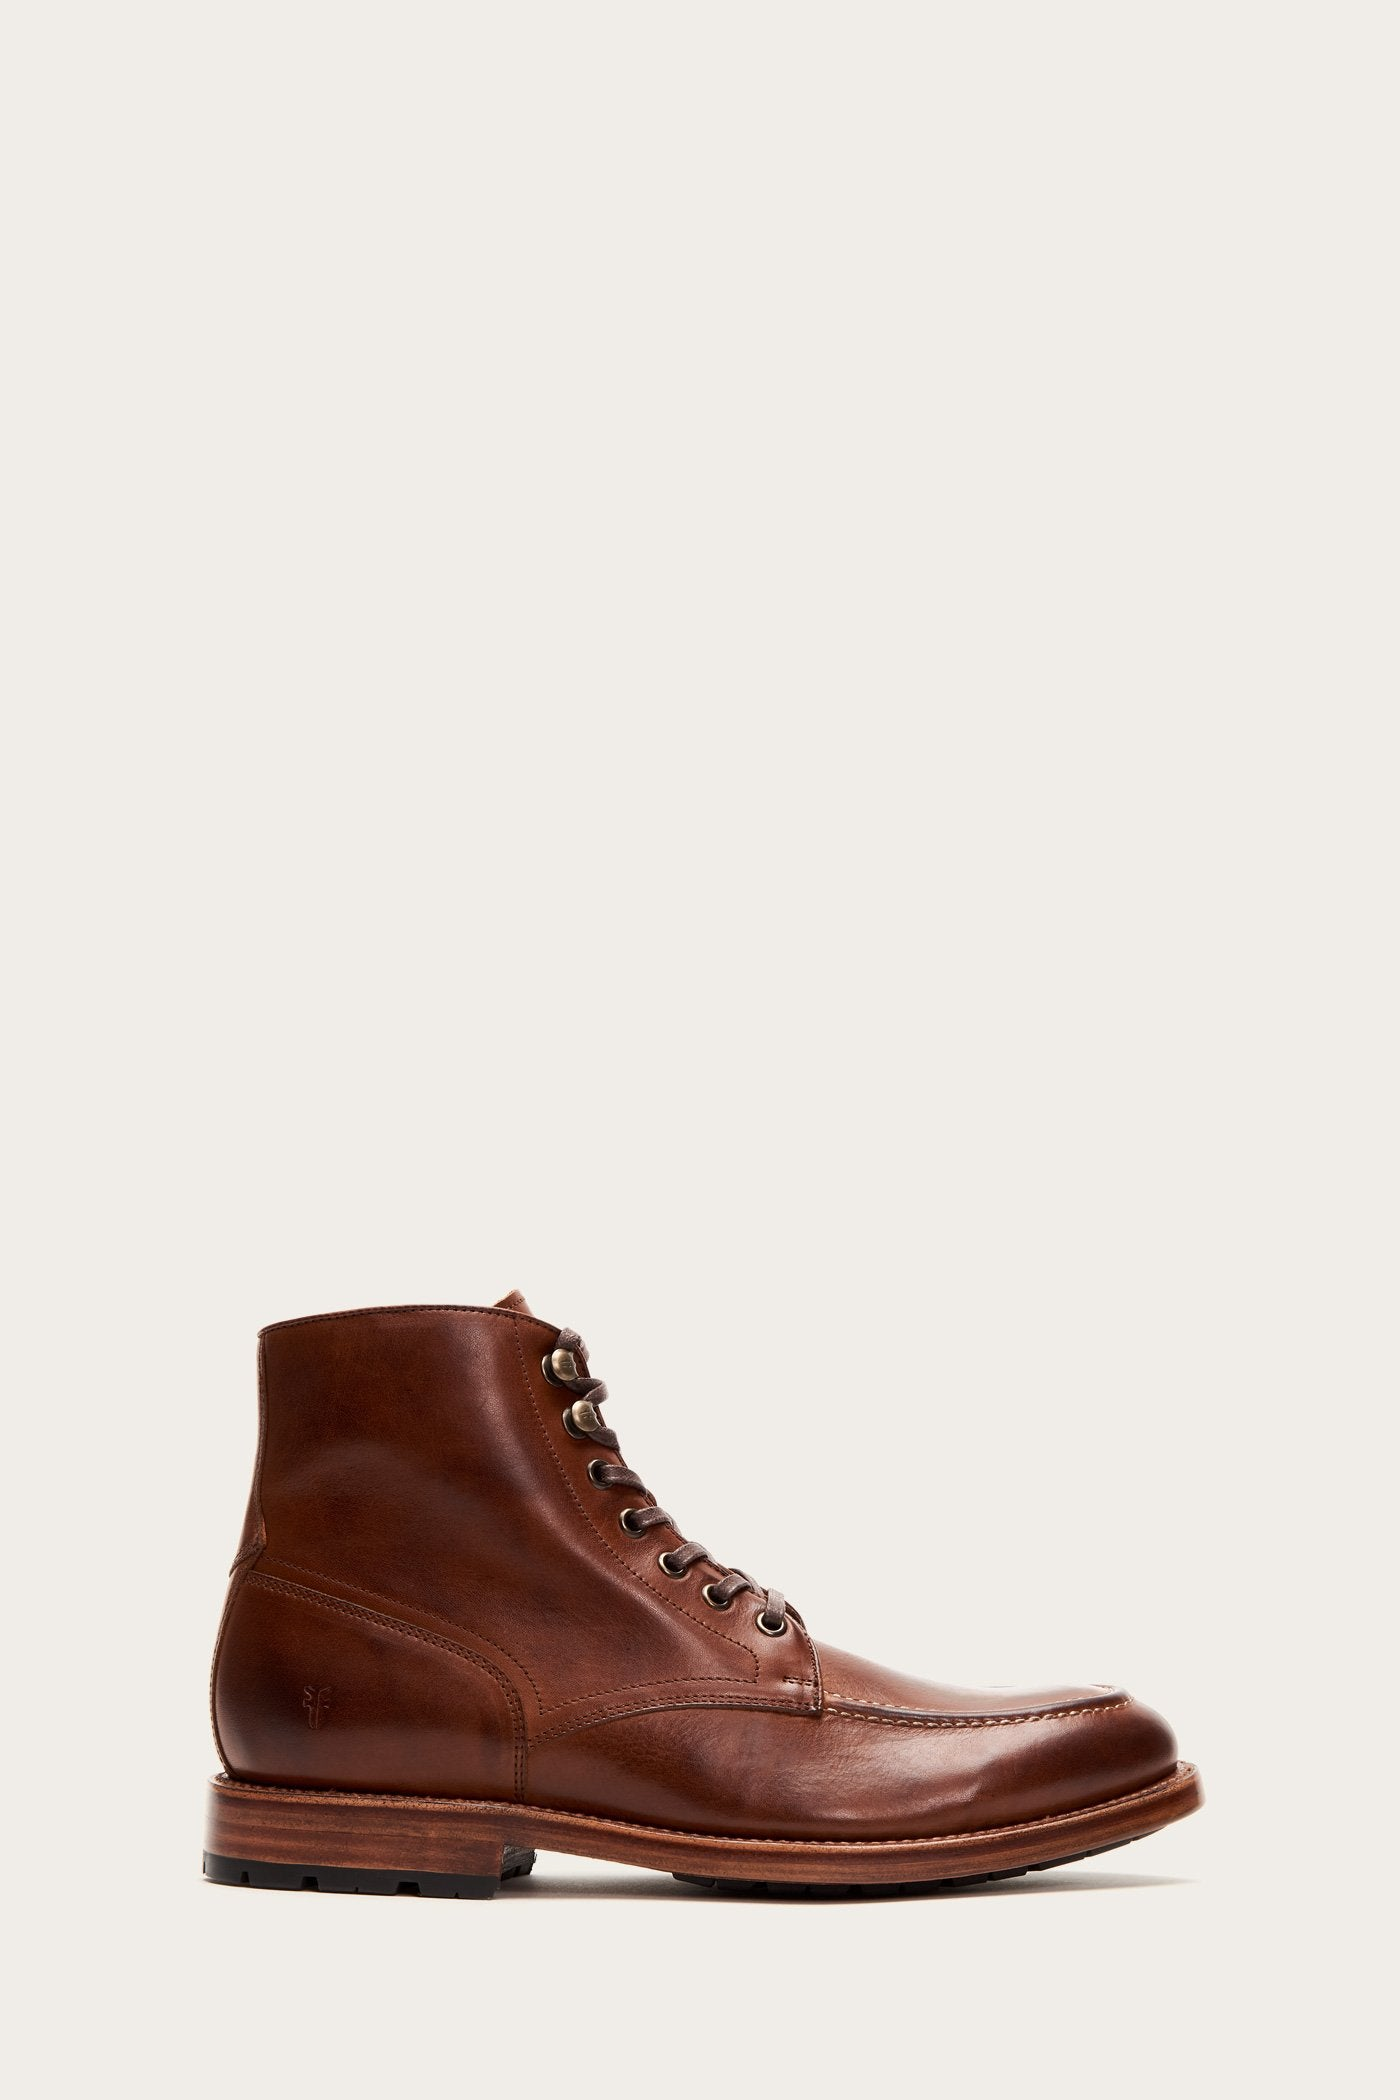 1920s Style Mens Shoes | Peaky Blinders Boots Bowery Moc Lace Up $358.00 AT vintagedancer.com